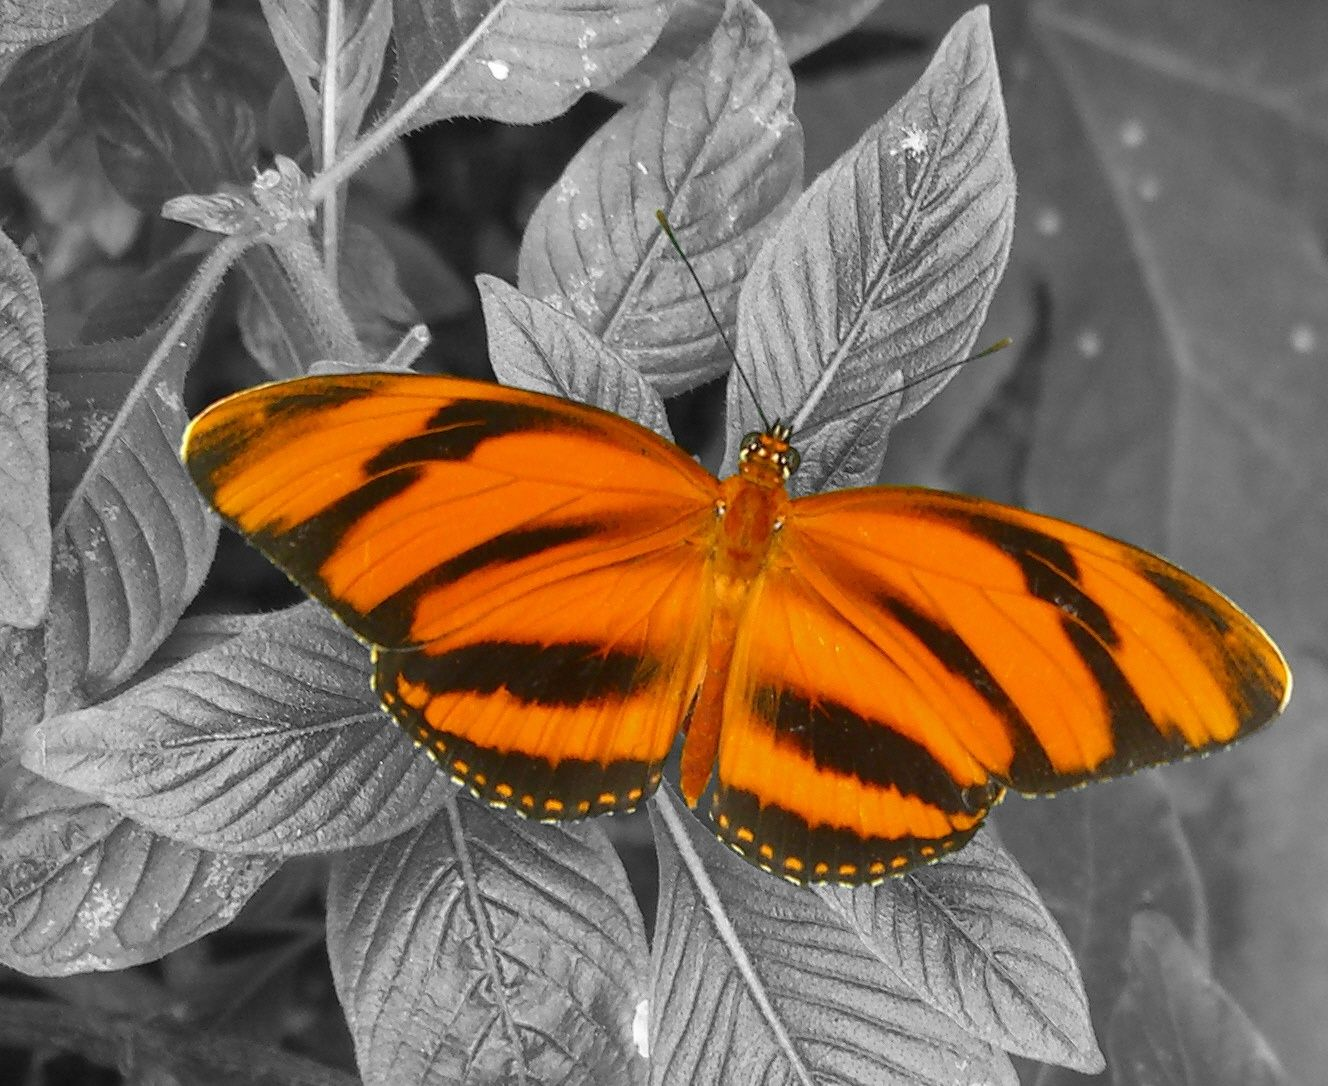 Orange And Black Butterfly Black And White Background Jpg 1328 1086 Black And White Background Butterfly Black And White Orange And Black Butterfly